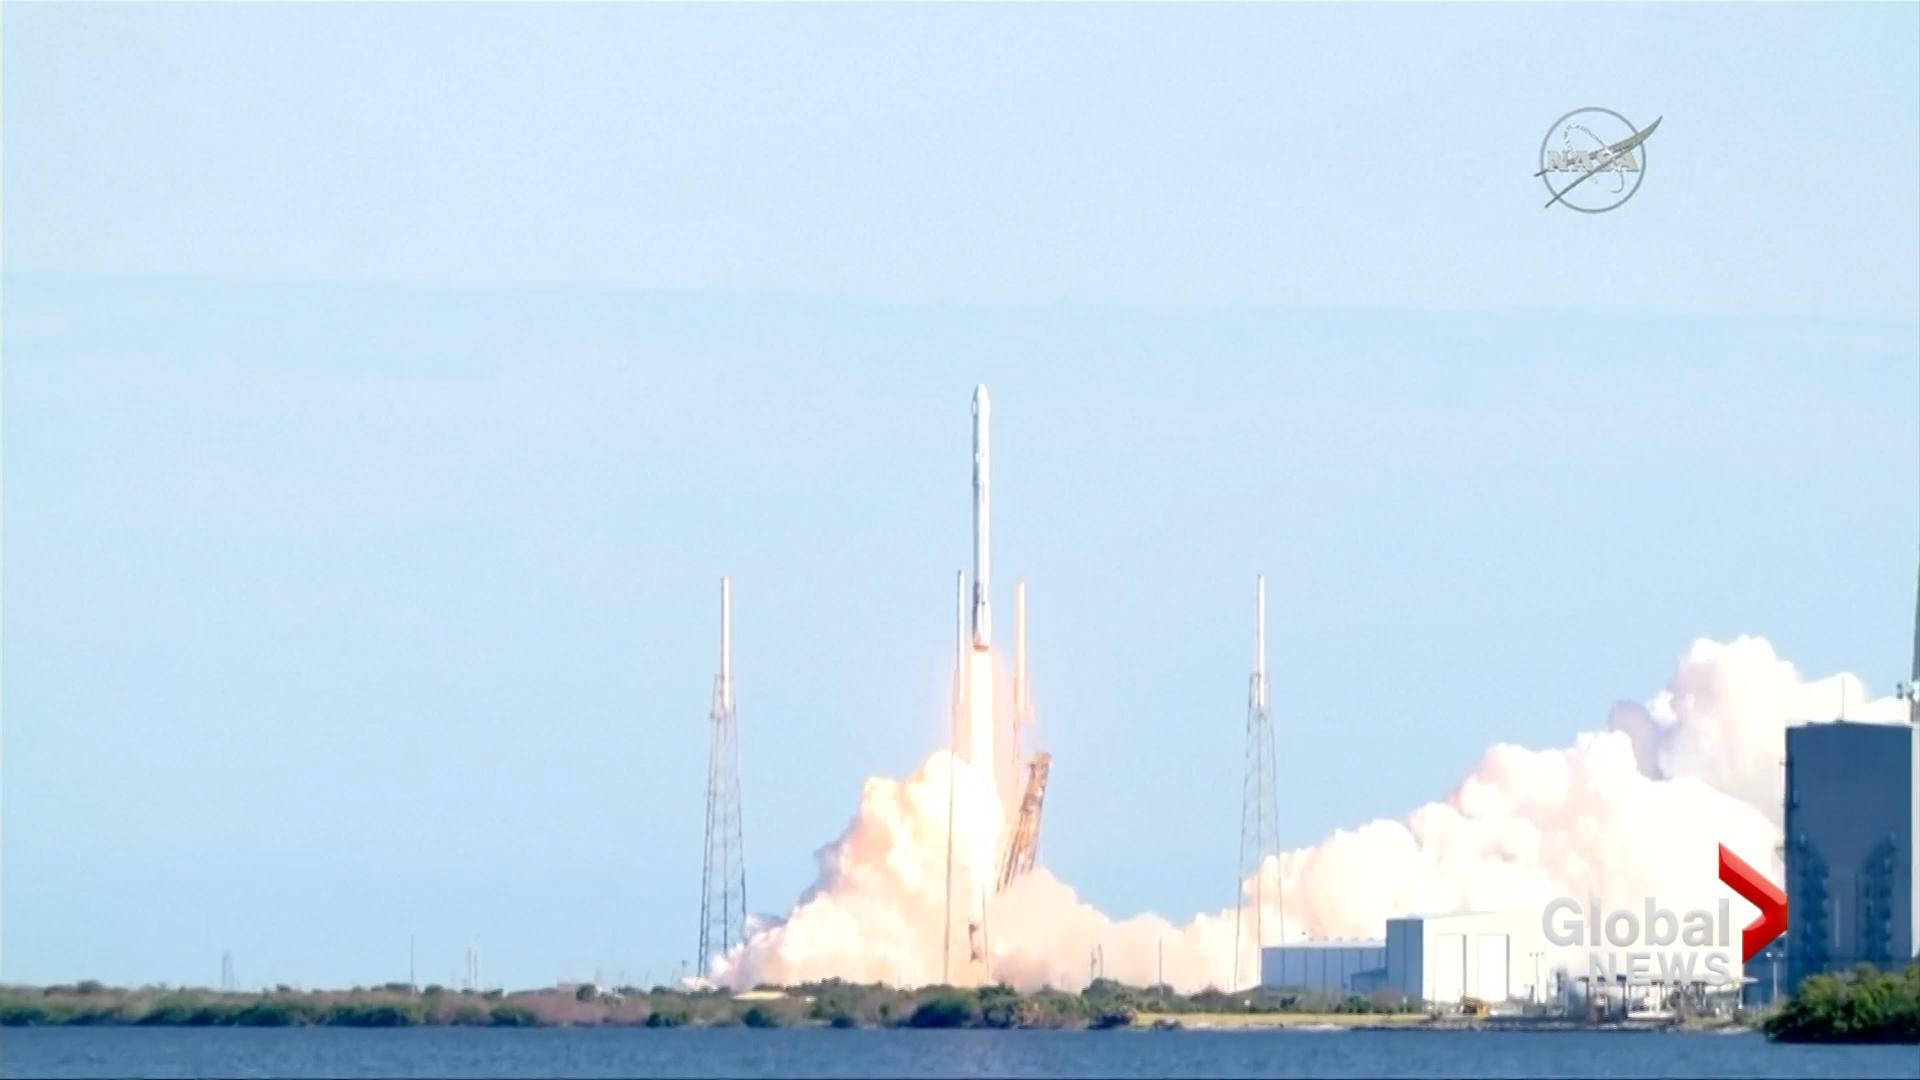 SpaceX outdid themselves with a picture-perfect rocket landing